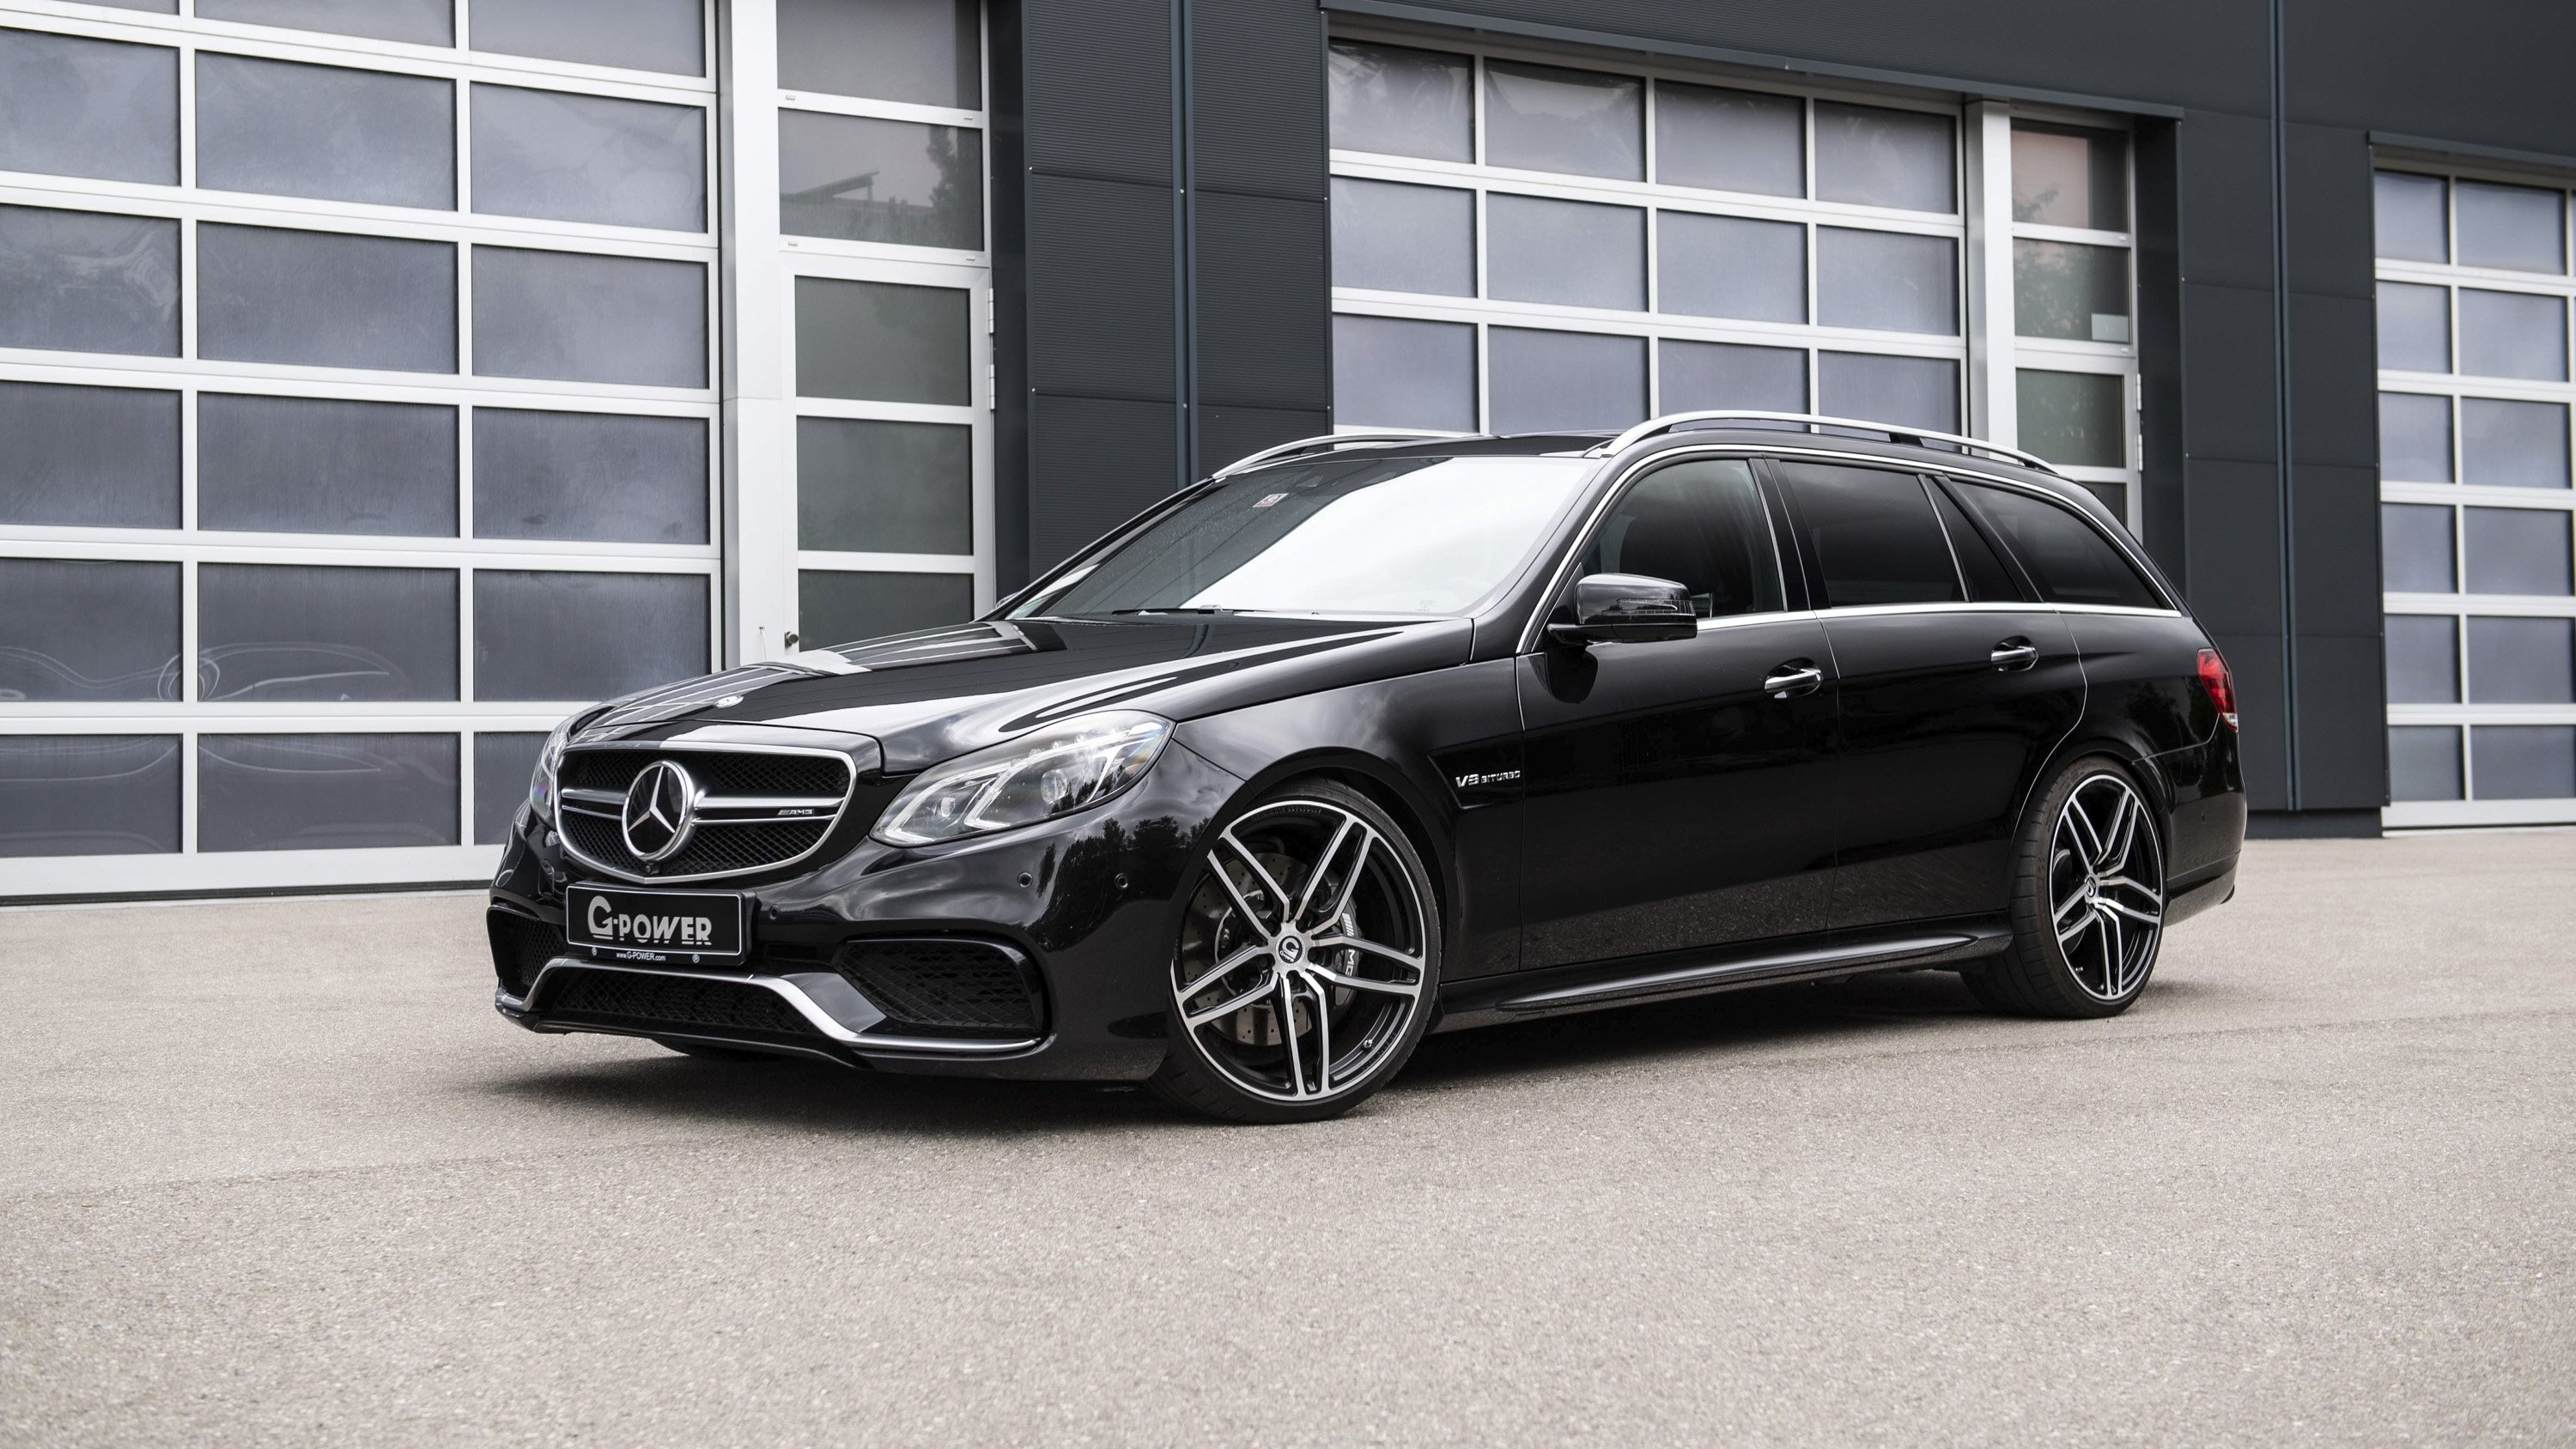 mercedes amg e63 s wagon by g power top speed howldb. Black Bedroom Furniture Sets. Home Design Ideas